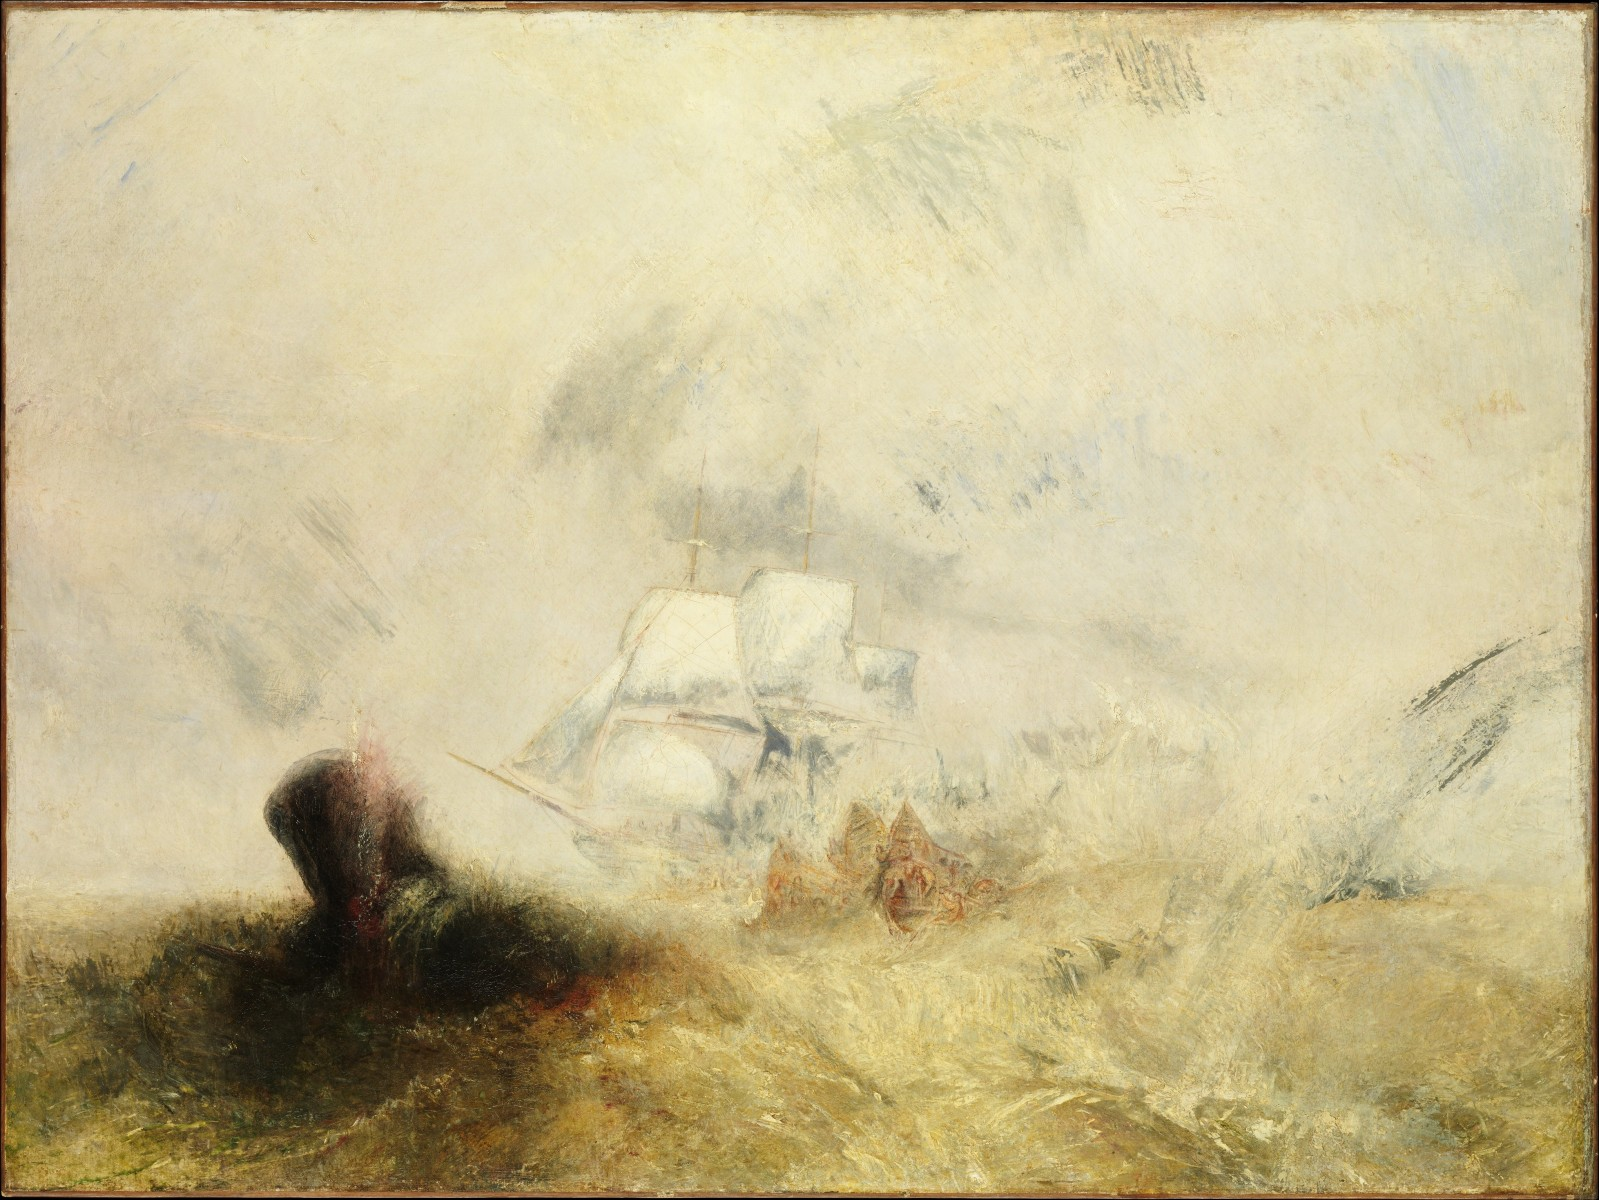 William Turner's Whaling Paintings at the Met Through Aug. 7